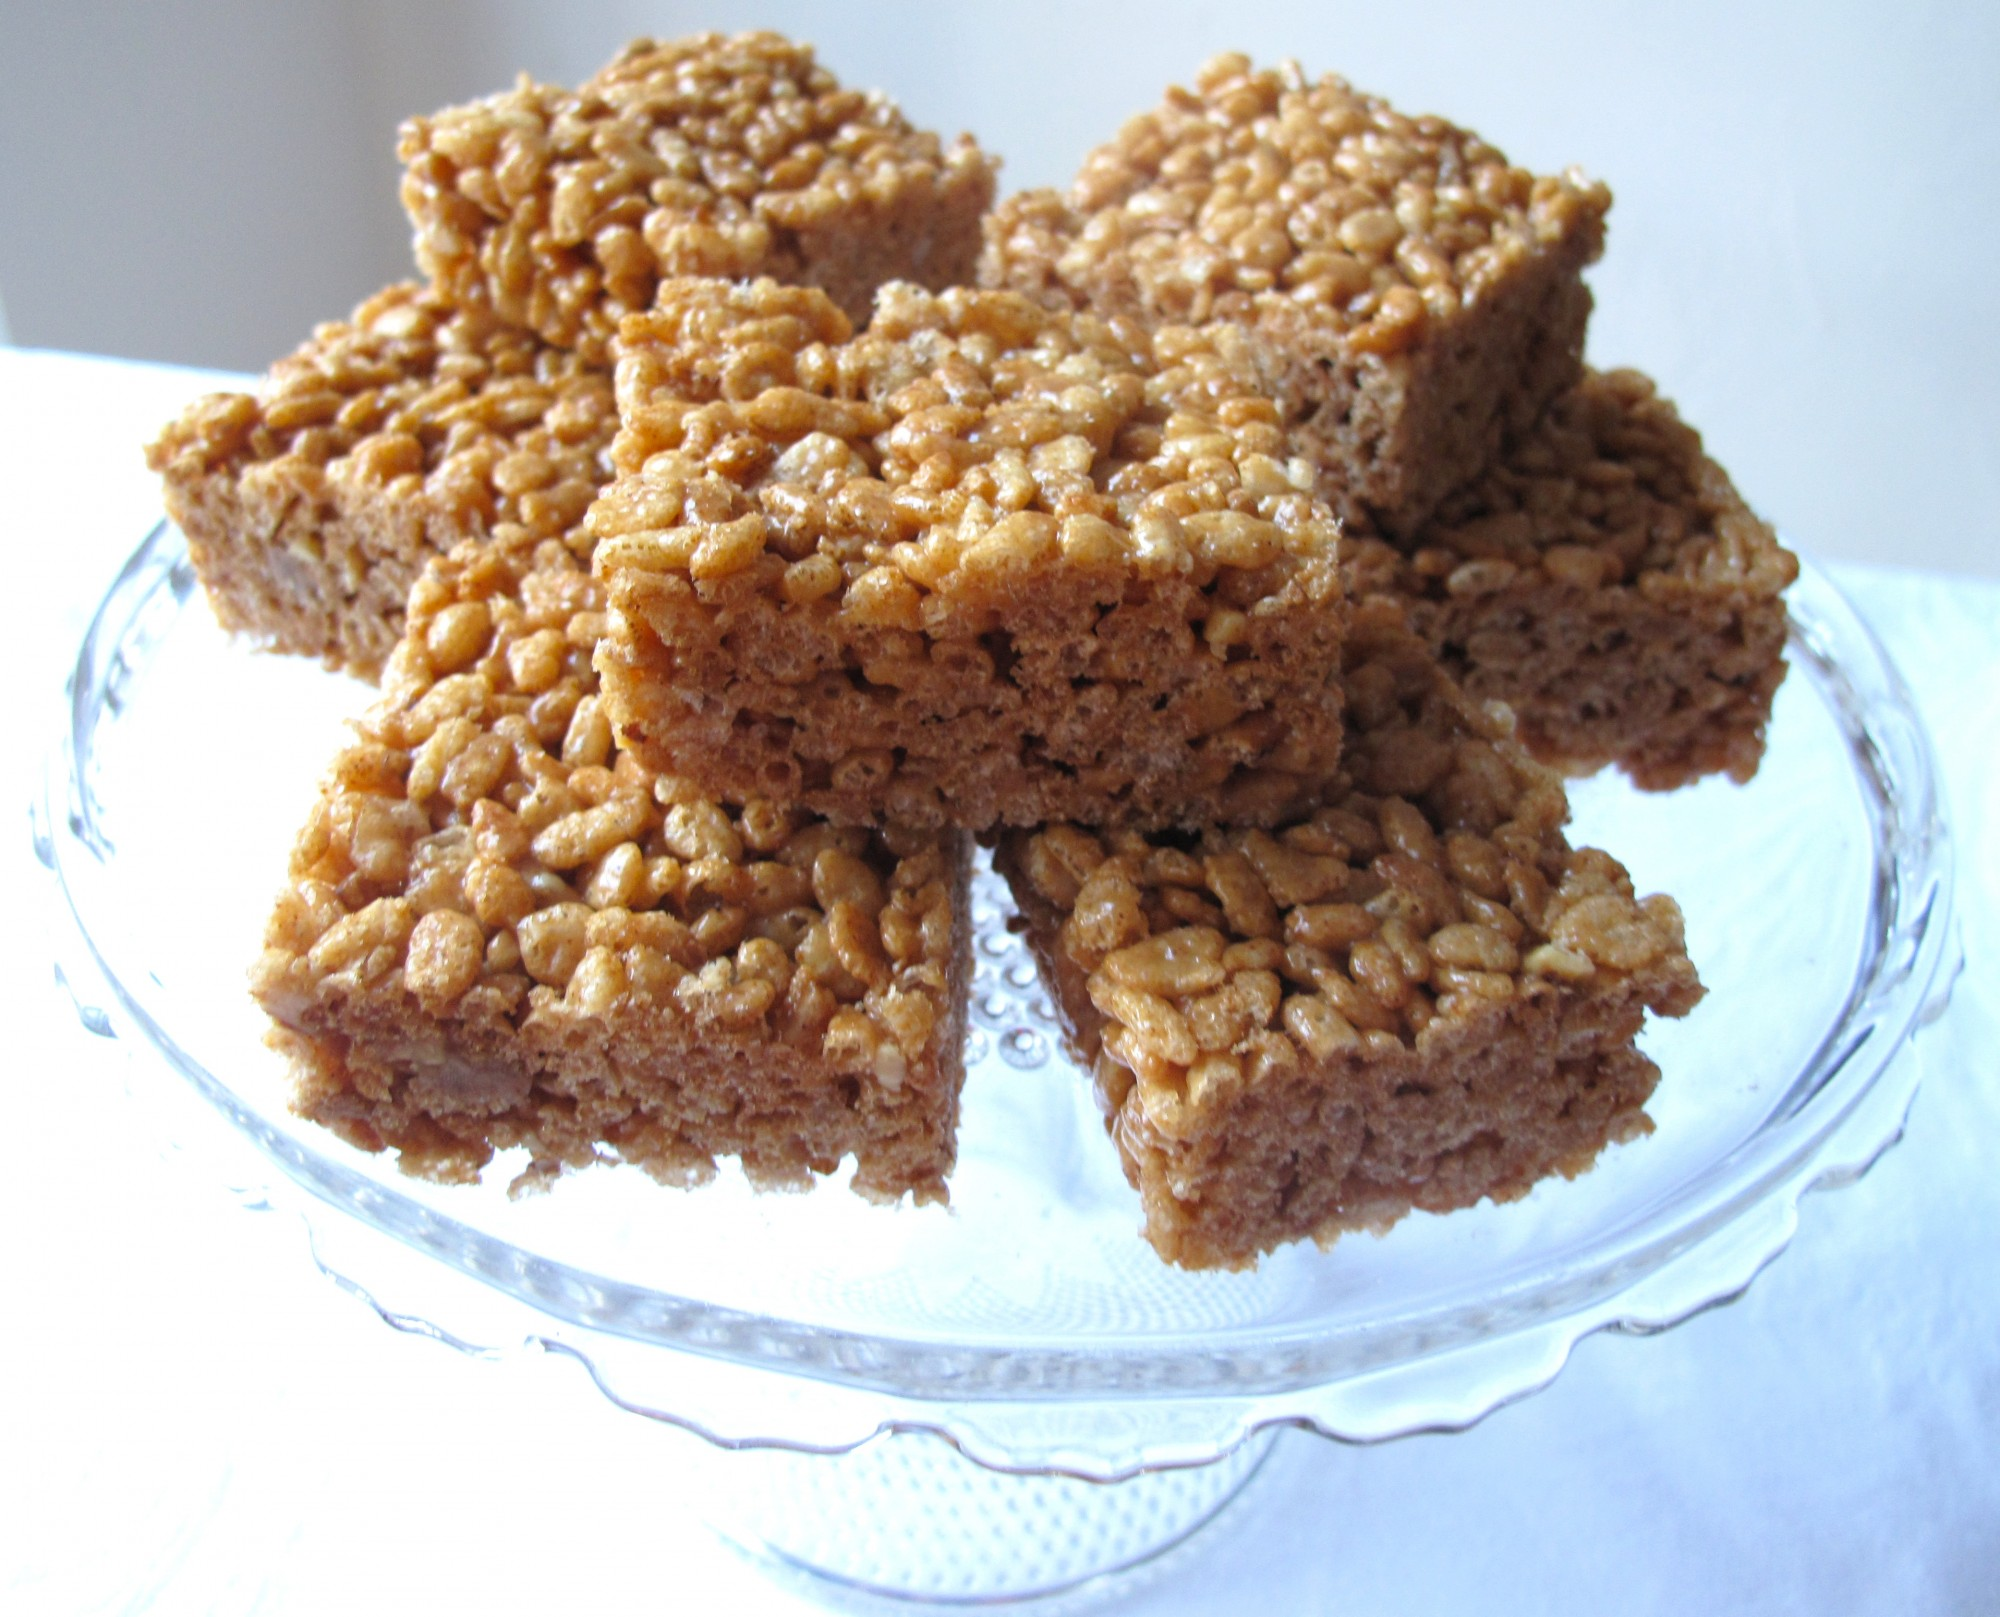 Brown Rice Crispy Treats e1332118946453 Naked Apple Pie